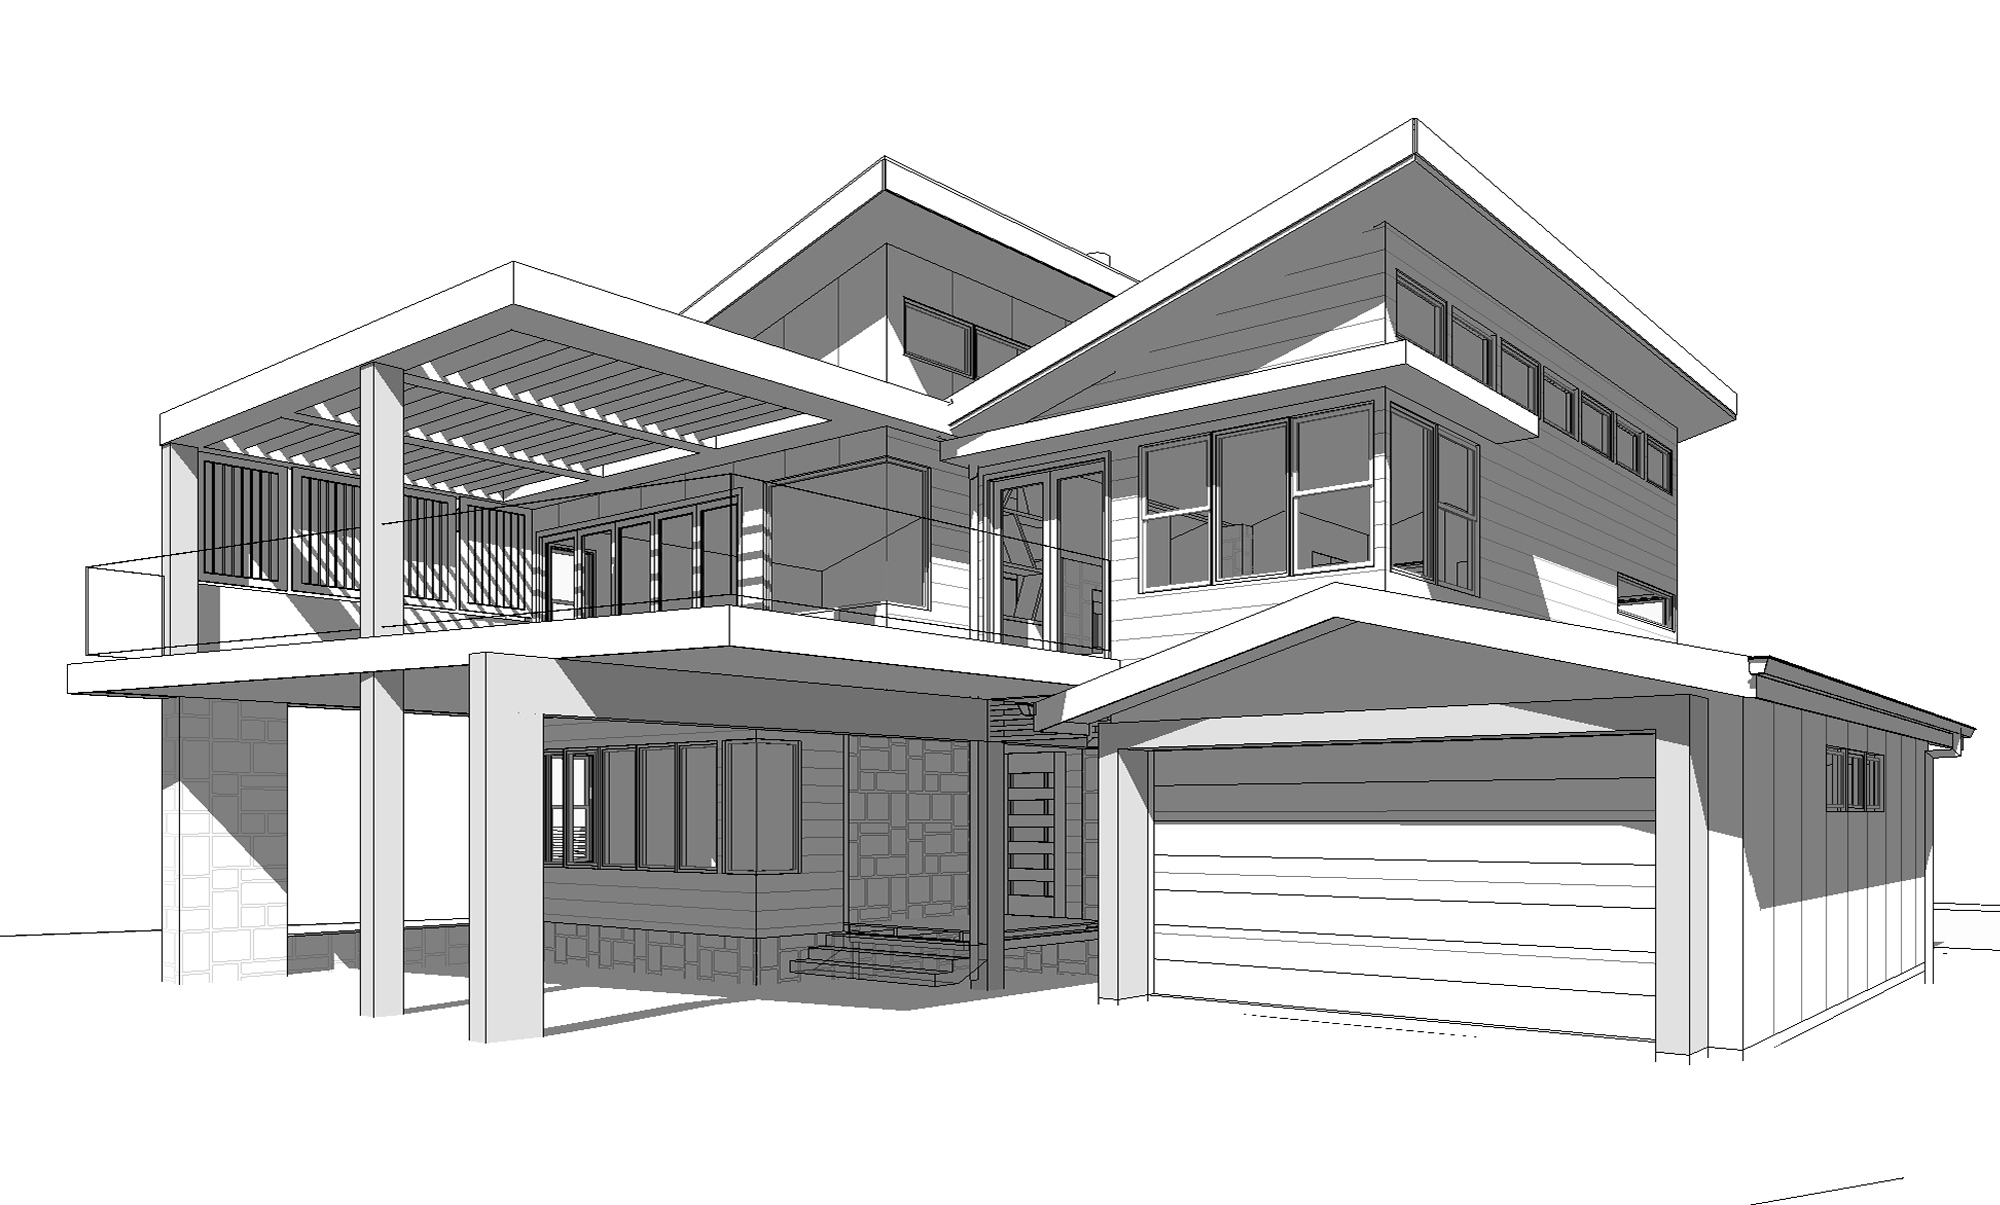 Architecture design drawing building architectural drawing for Architectural house plans